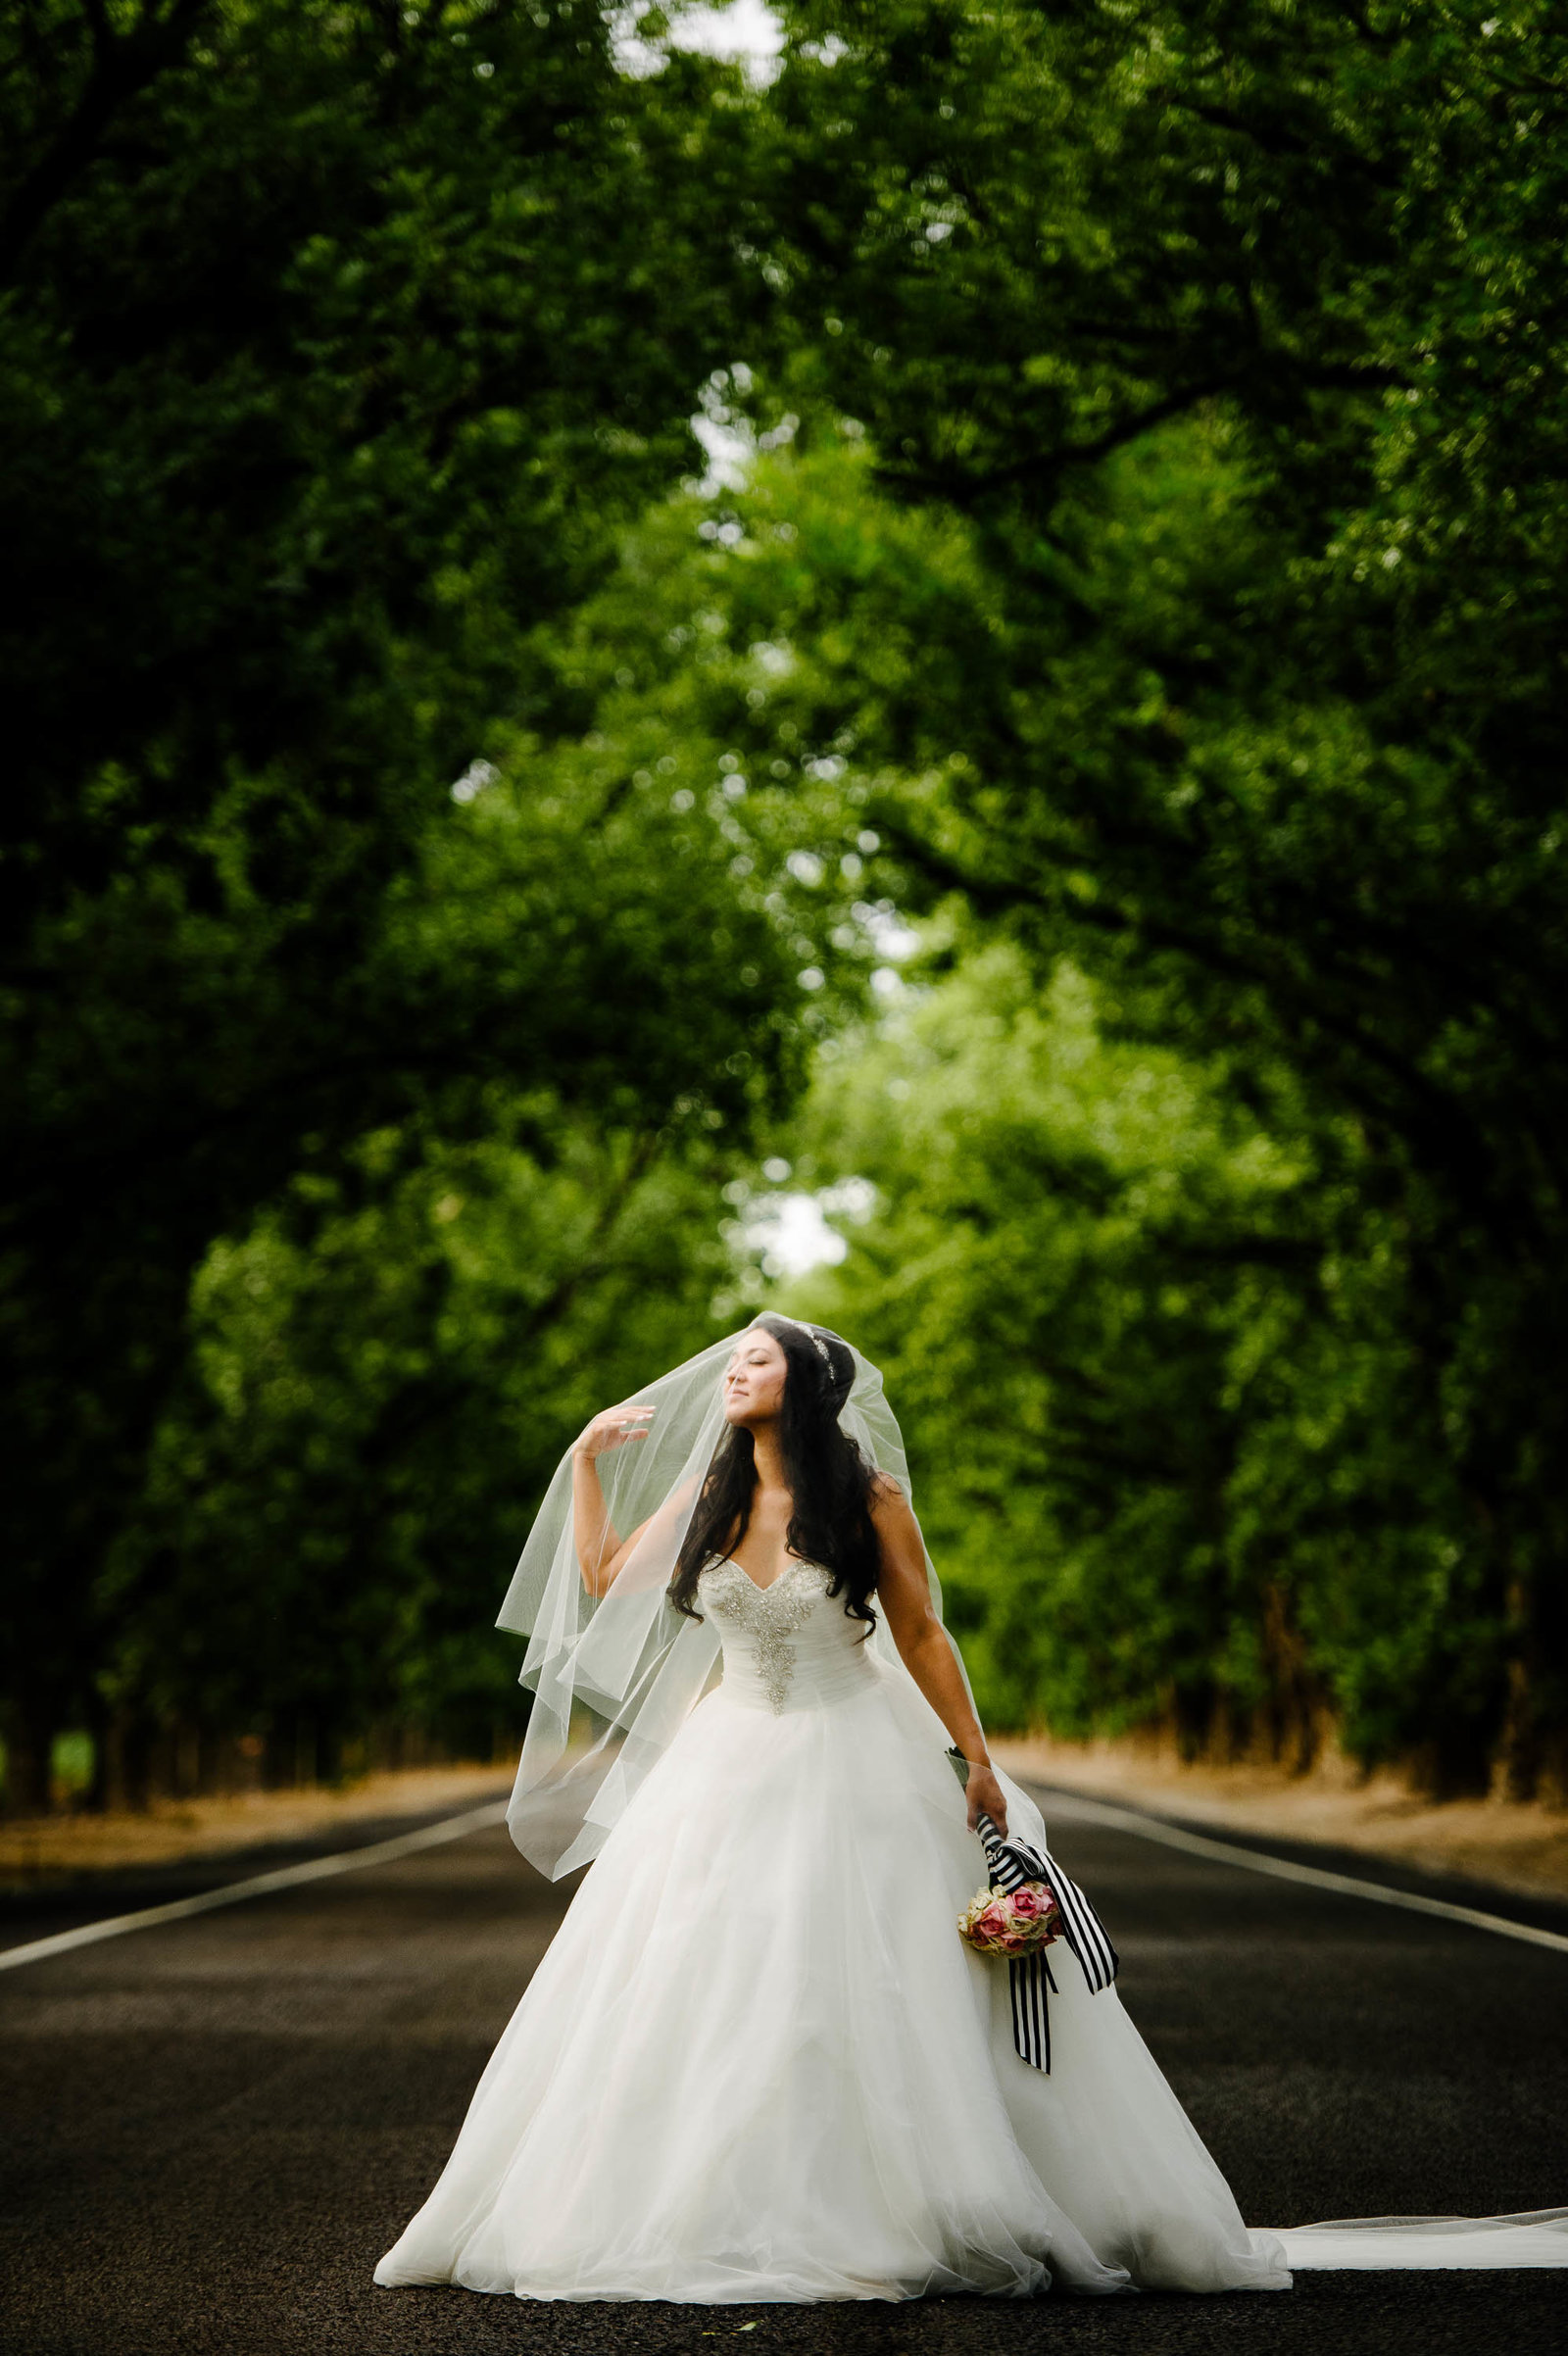 227-El-paso-wedding-photographer-El Paso Wedding Photographer_B30